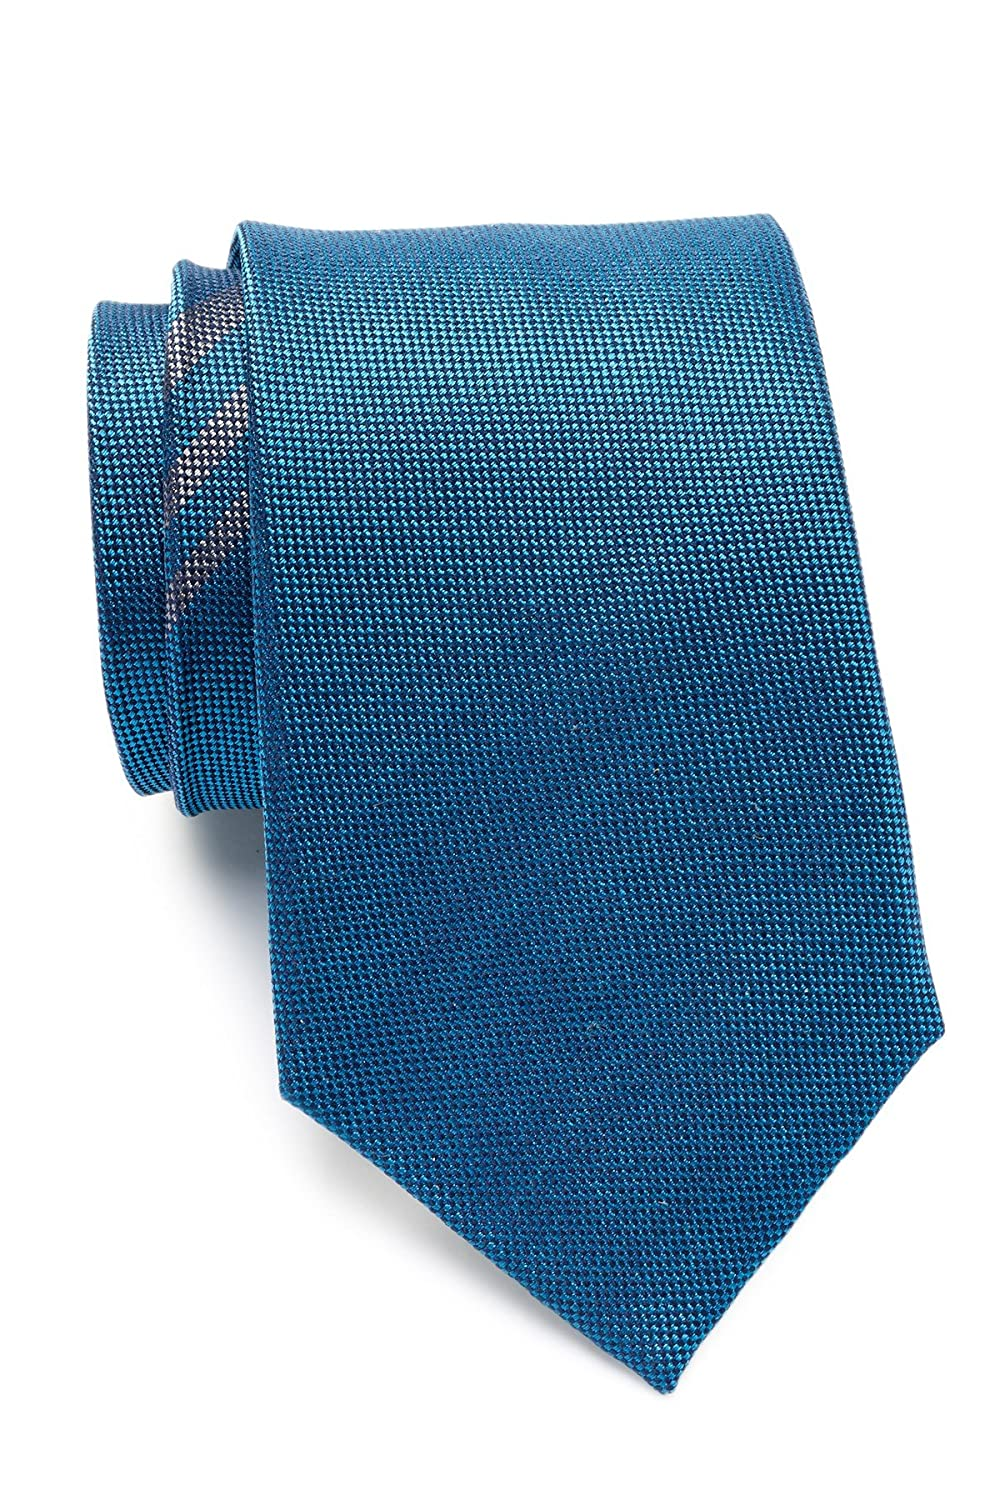 OS Ben Sherman Mens Plaid Silk Tie